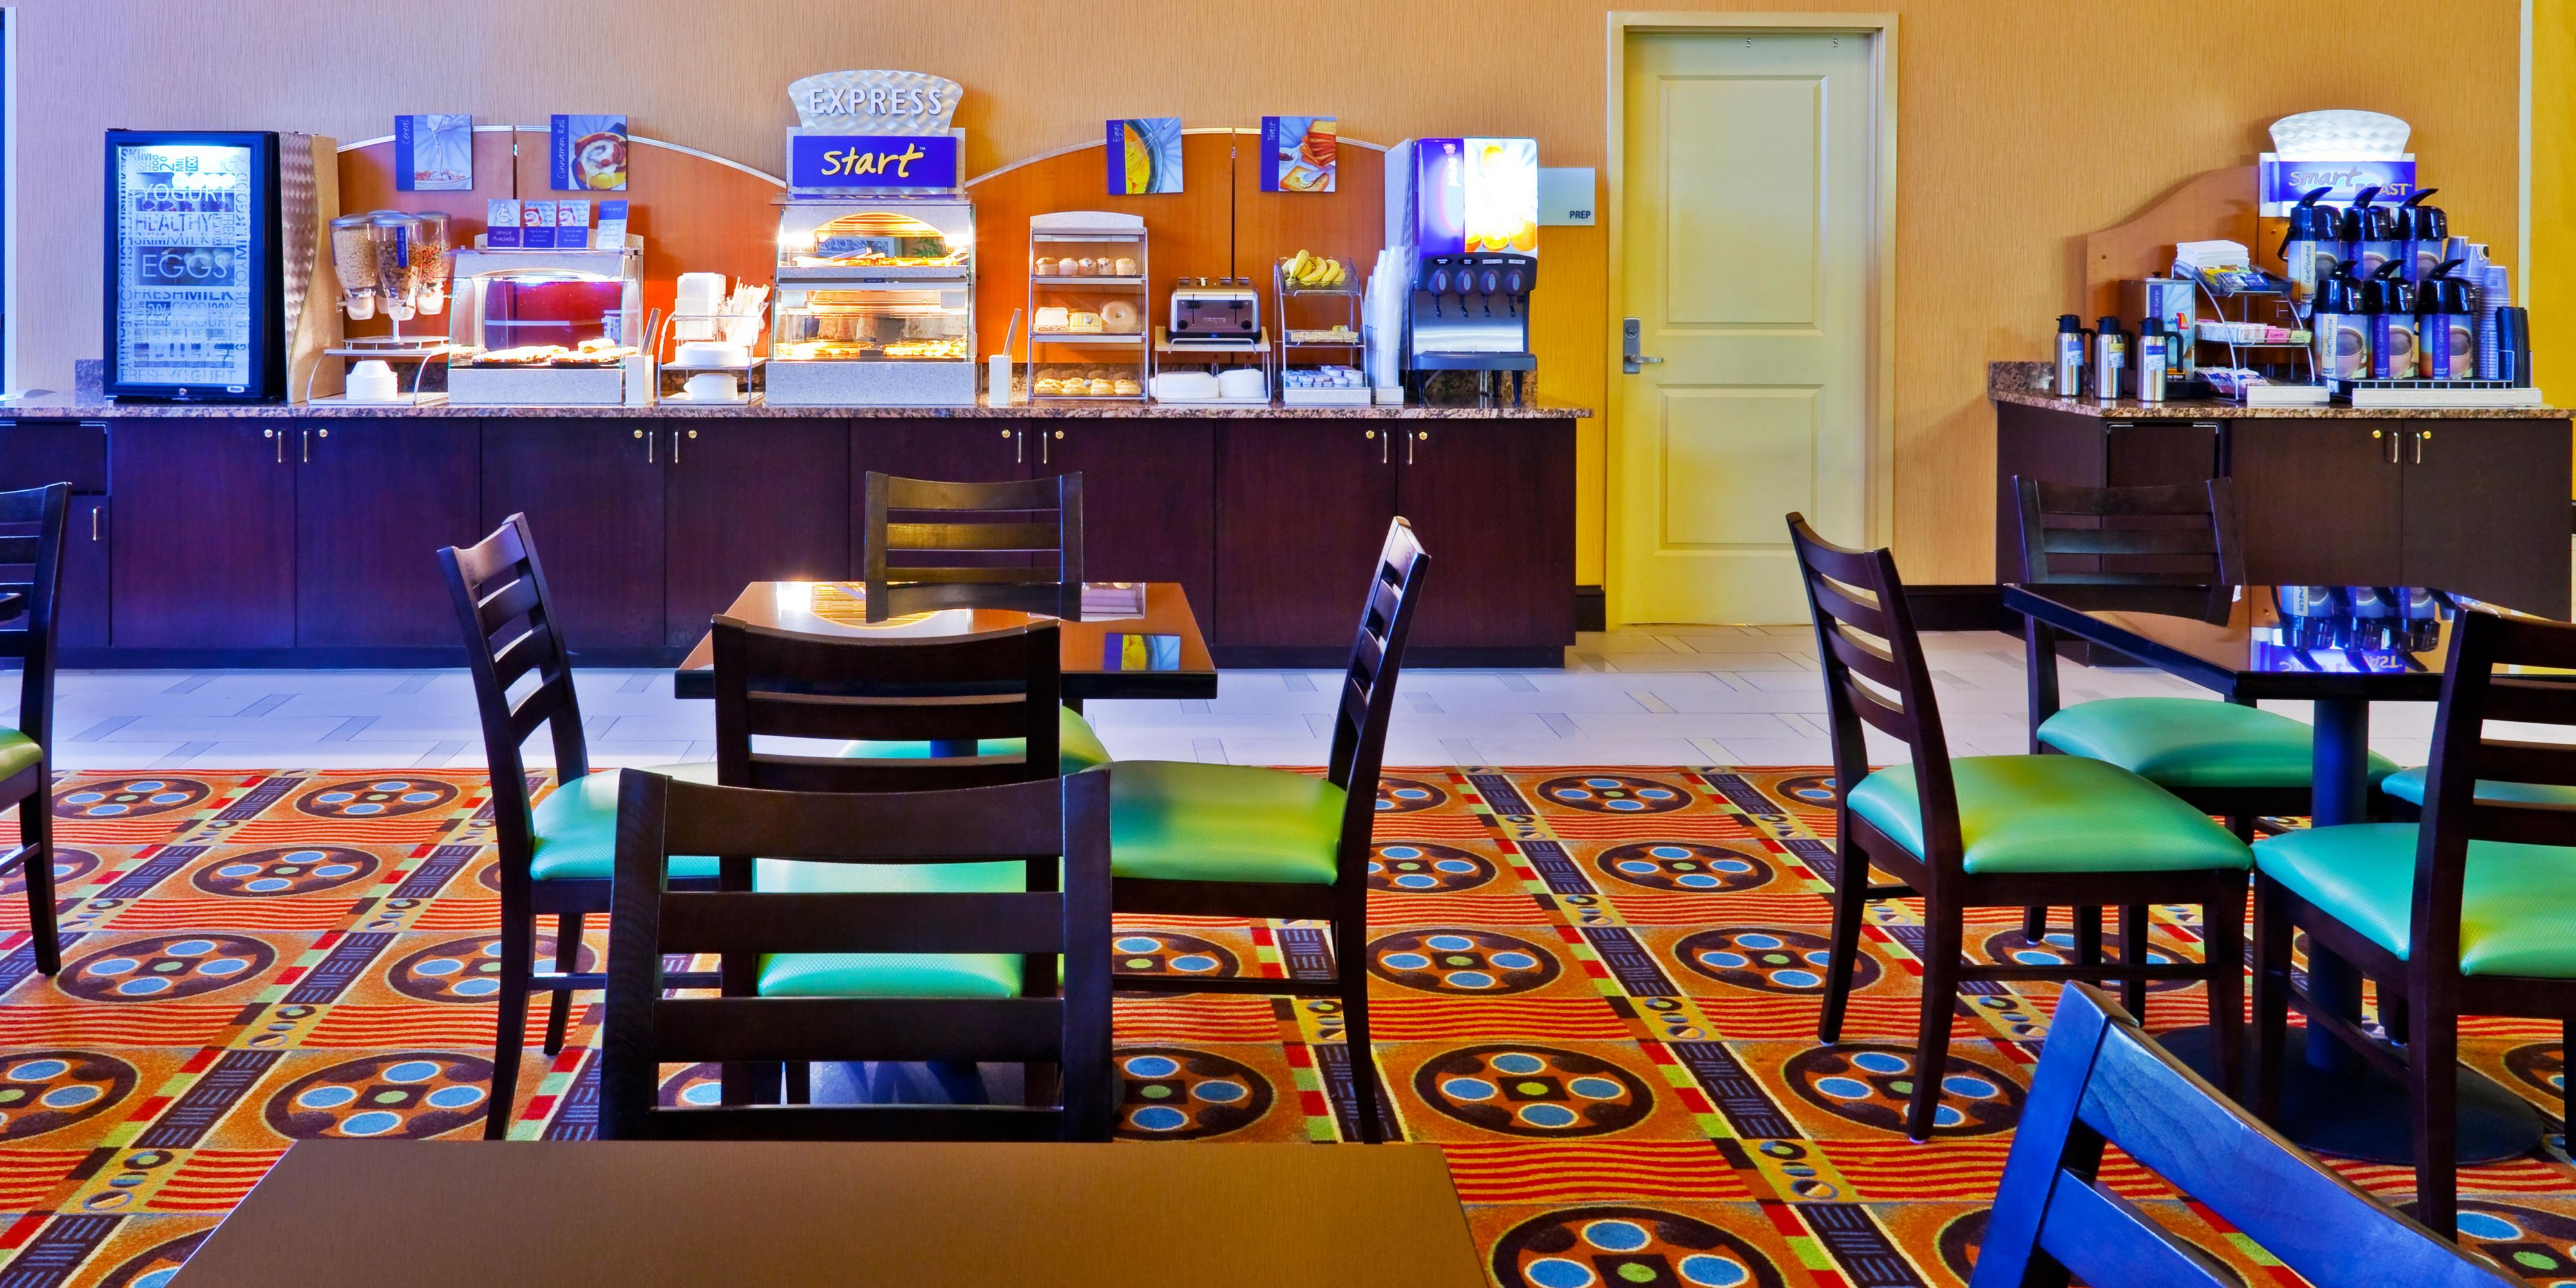 Holiday Inn Express & Suites Nashville-Opryland Hotel by IHG